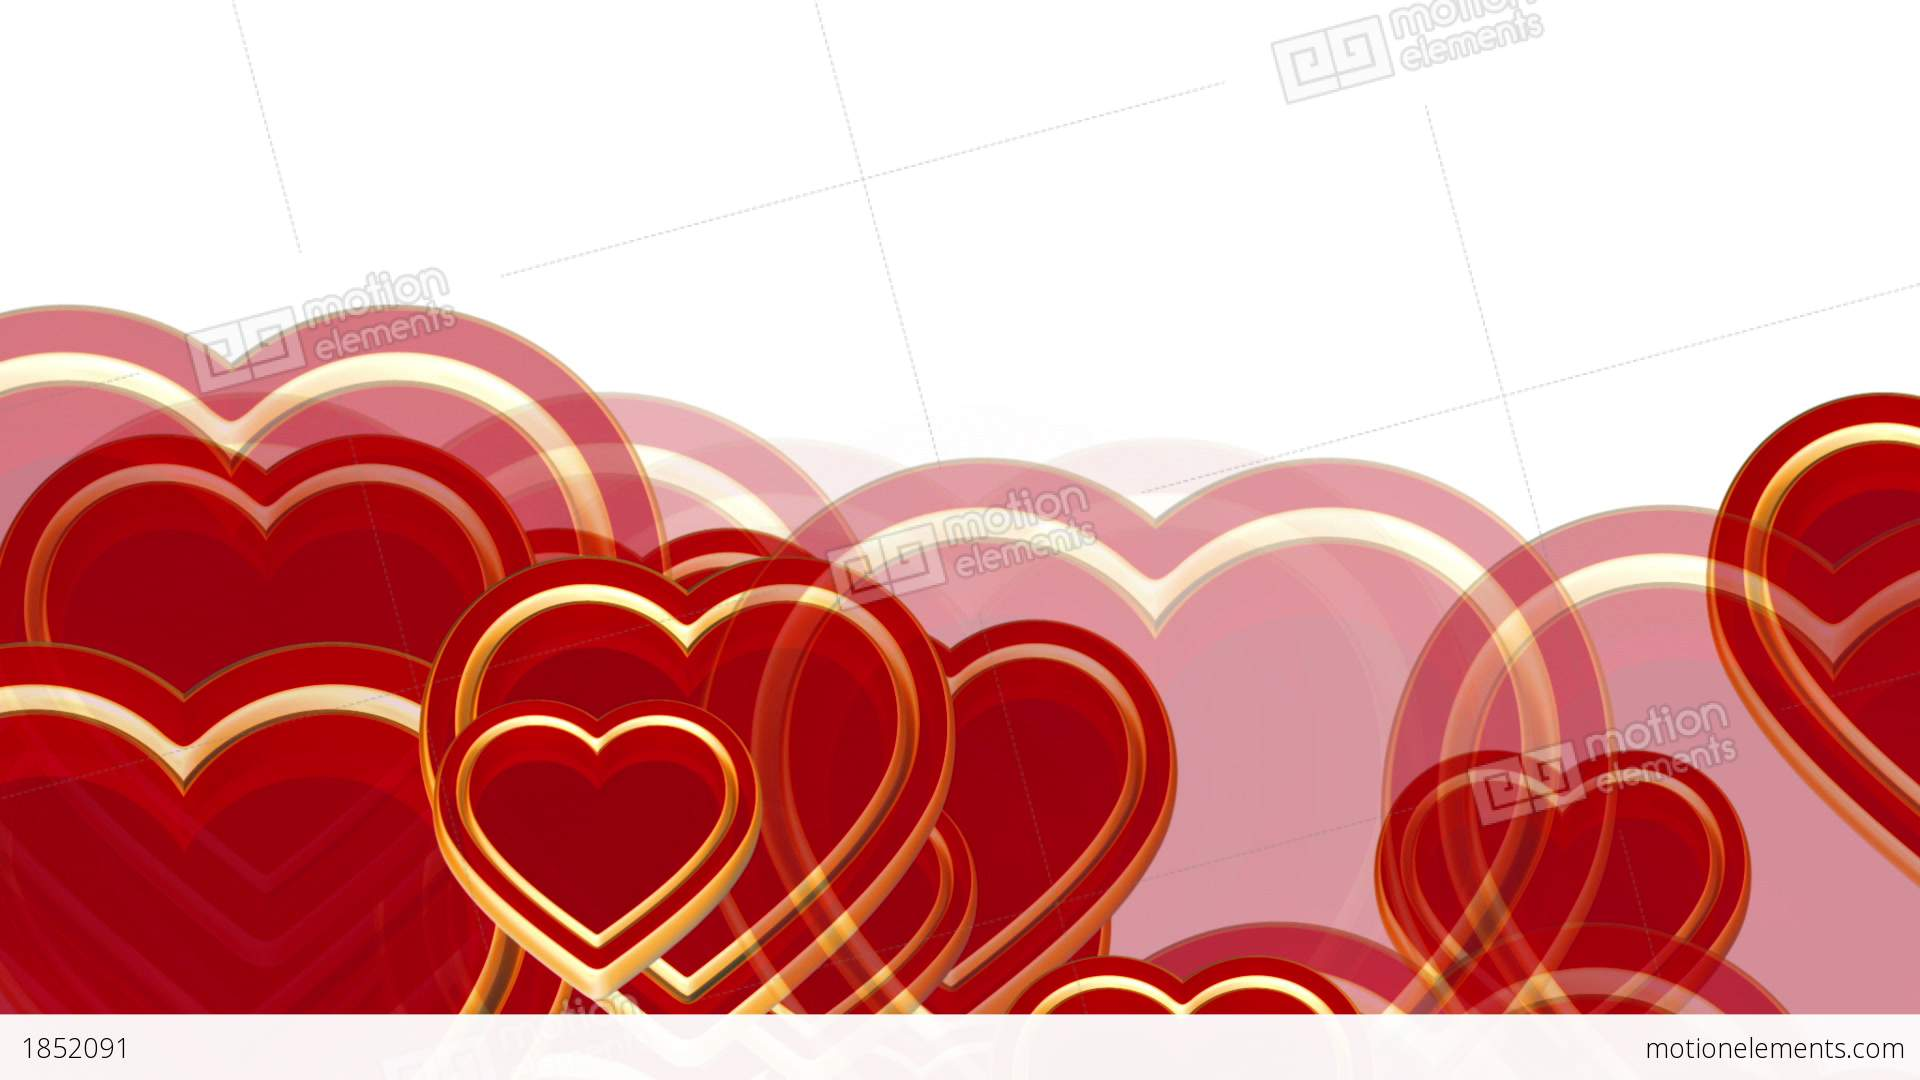 100 Flying Love Hearts Wedding Animation Valentines Stock Video Footage